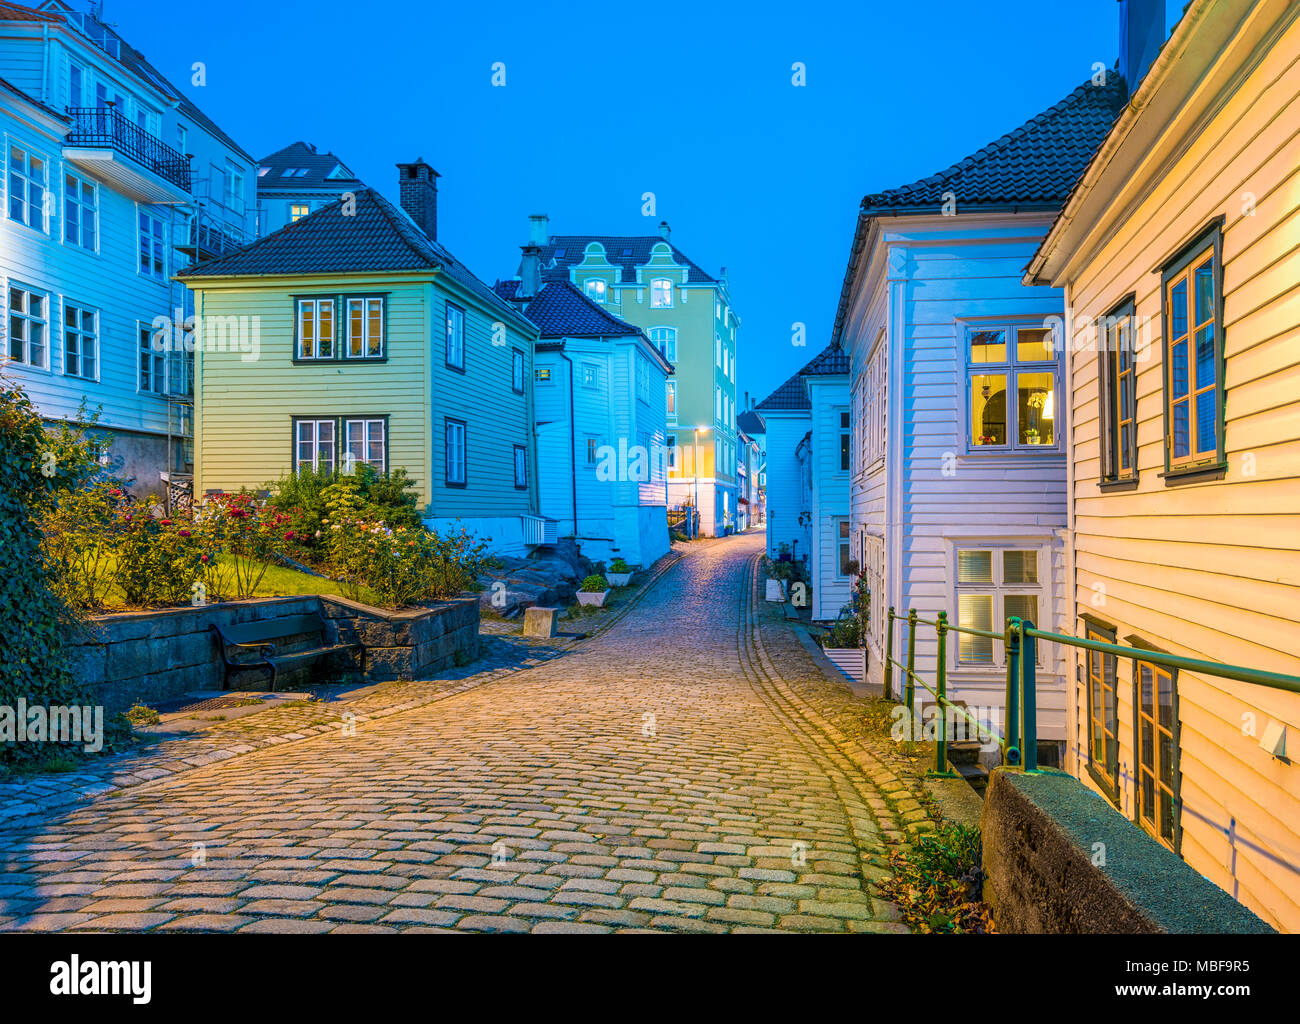 Bergen Norway, old town cobbled street and wooden houses at night - Stock Image